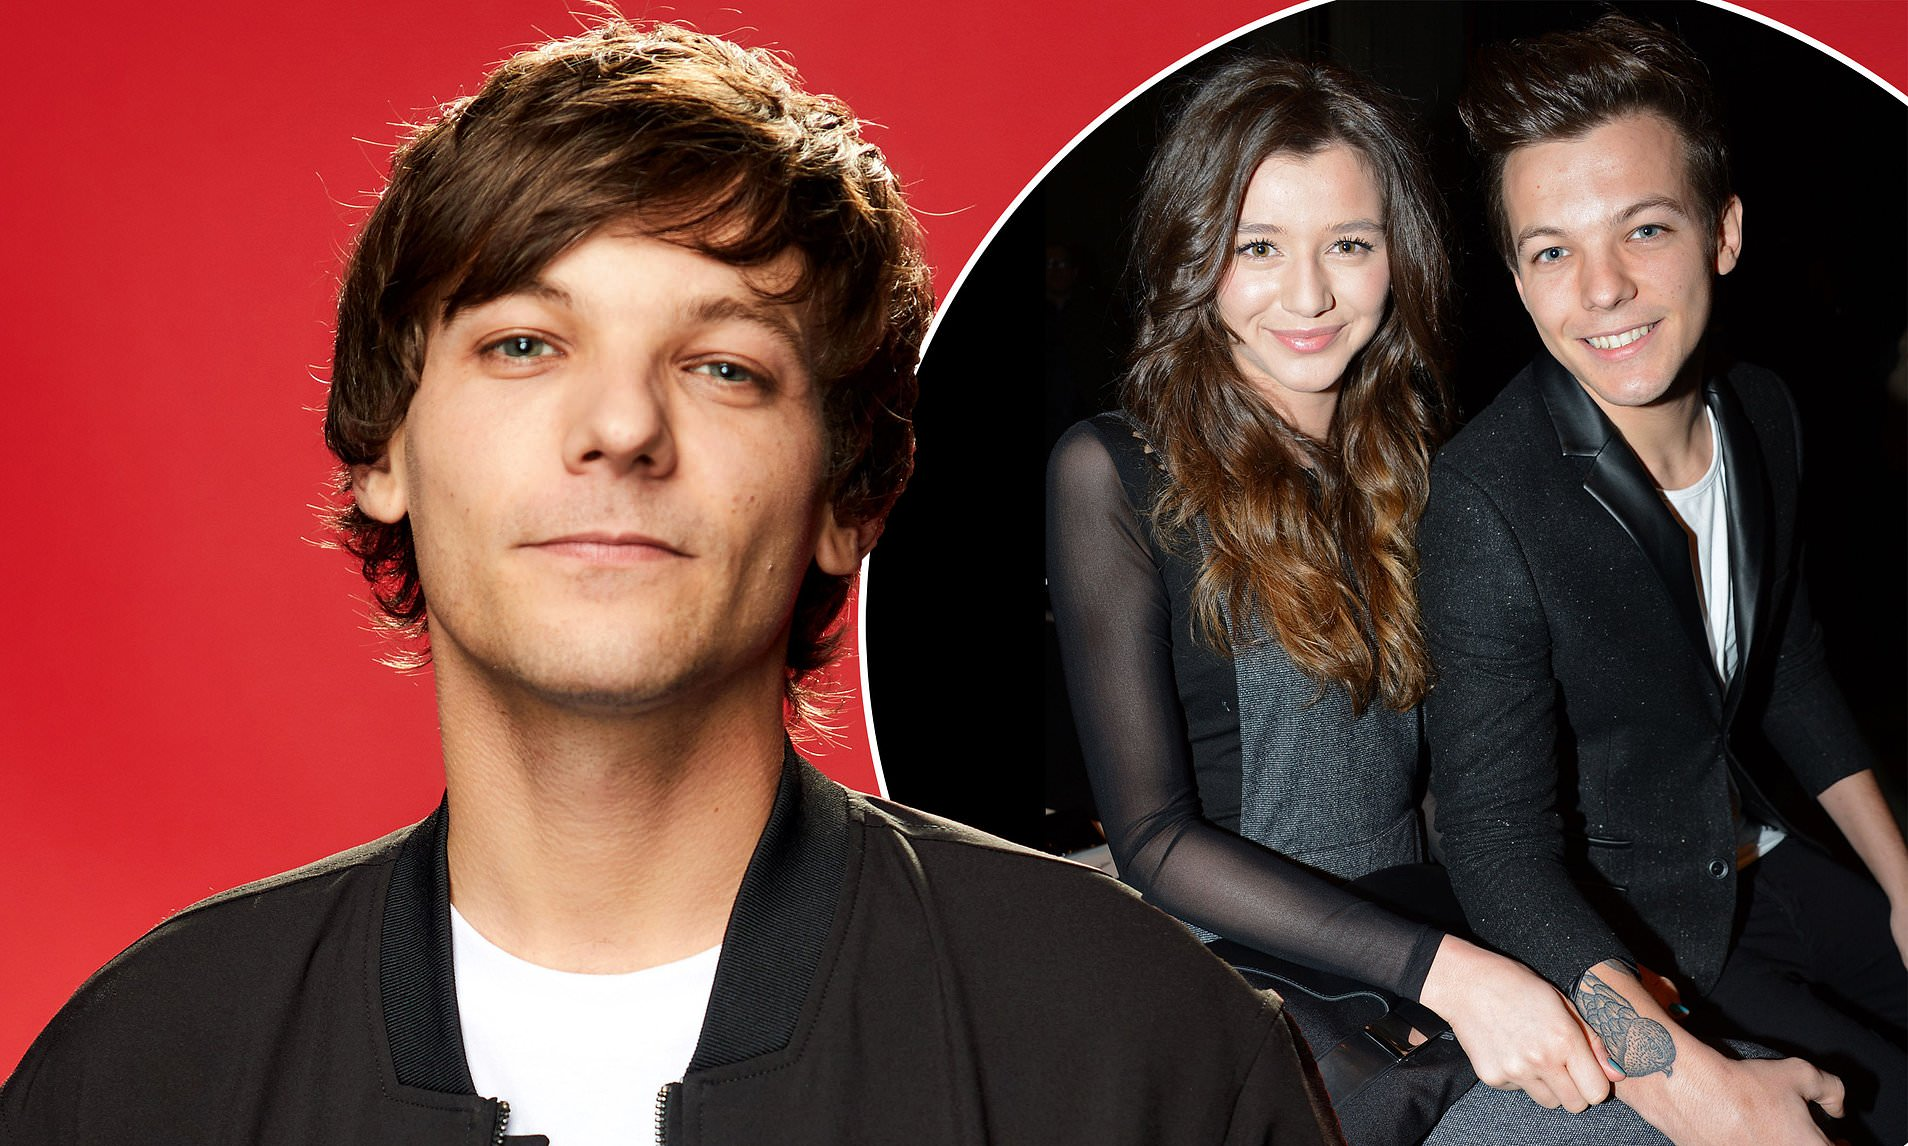 Who has Louis Tomlinson dated? Girlfriends List, Dating